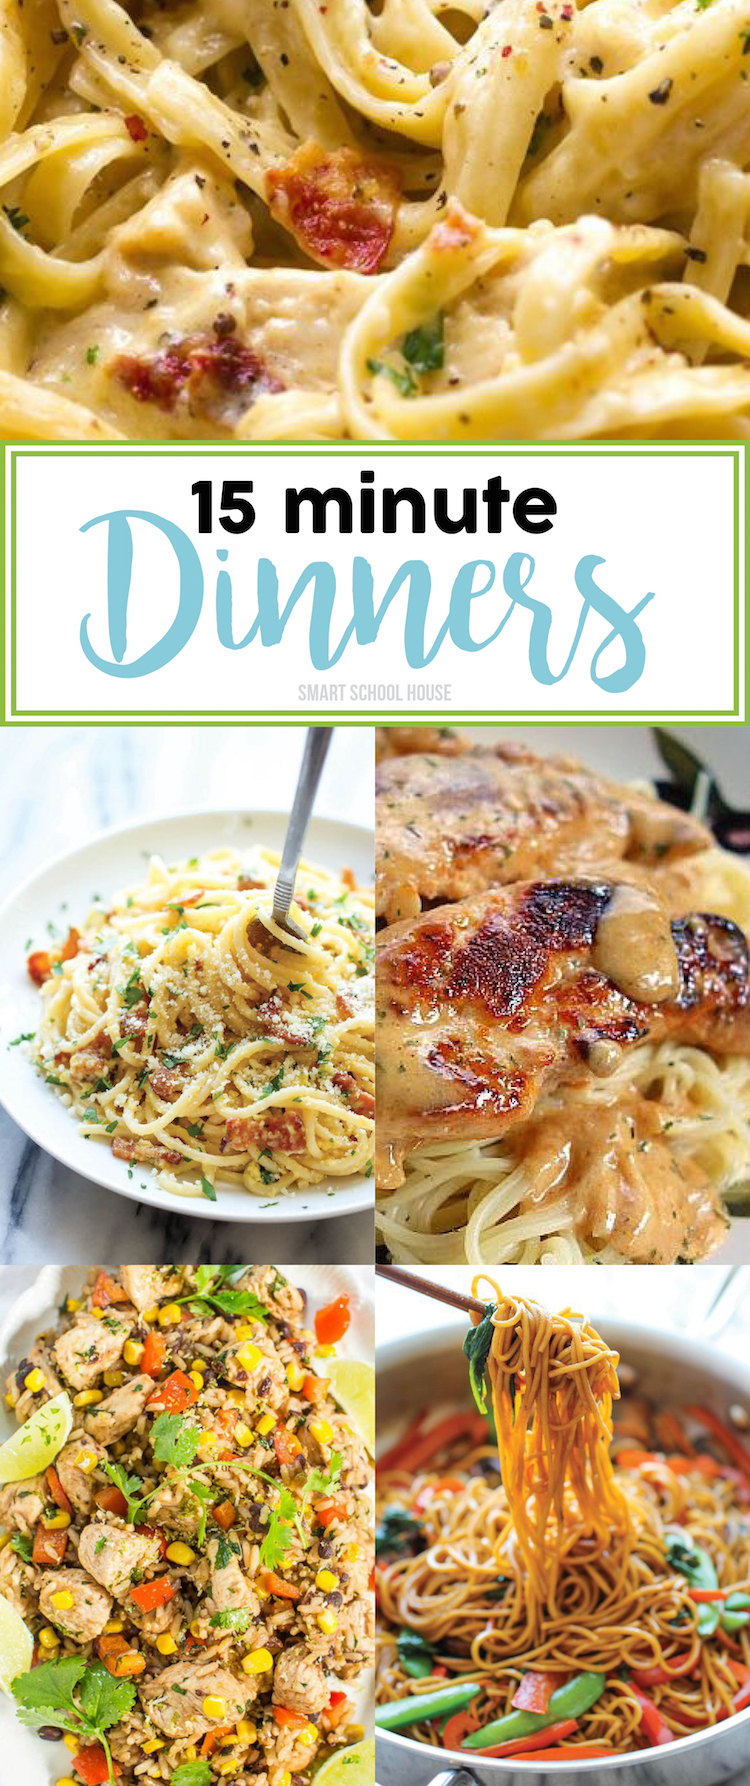 15 Easy Dinner Recipes For Kids That Grown-Ups Will Love Too